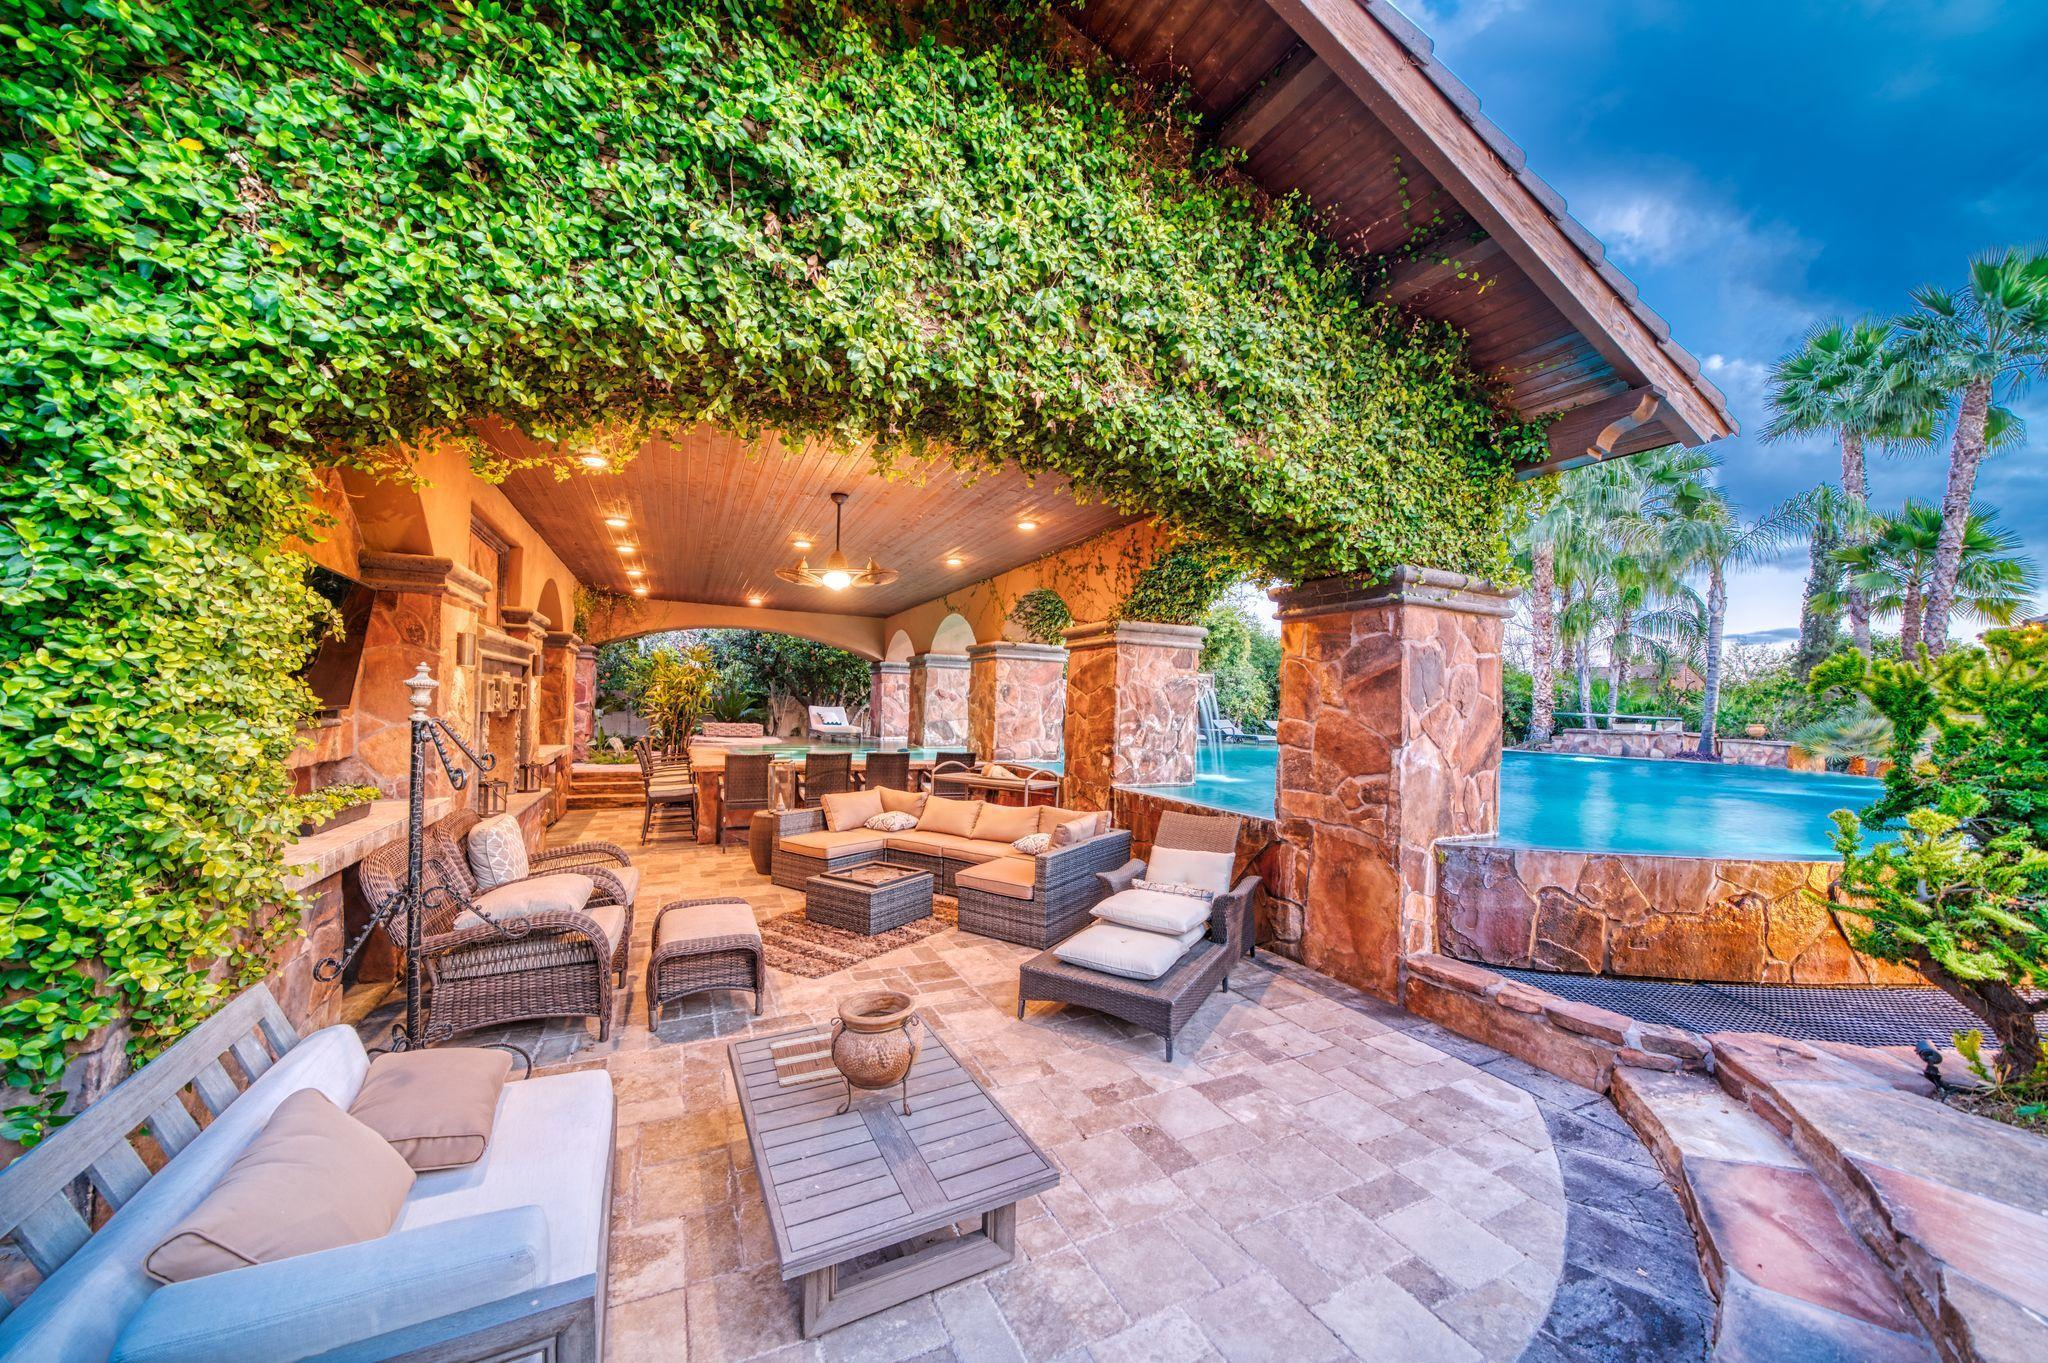 Large outdoor living area